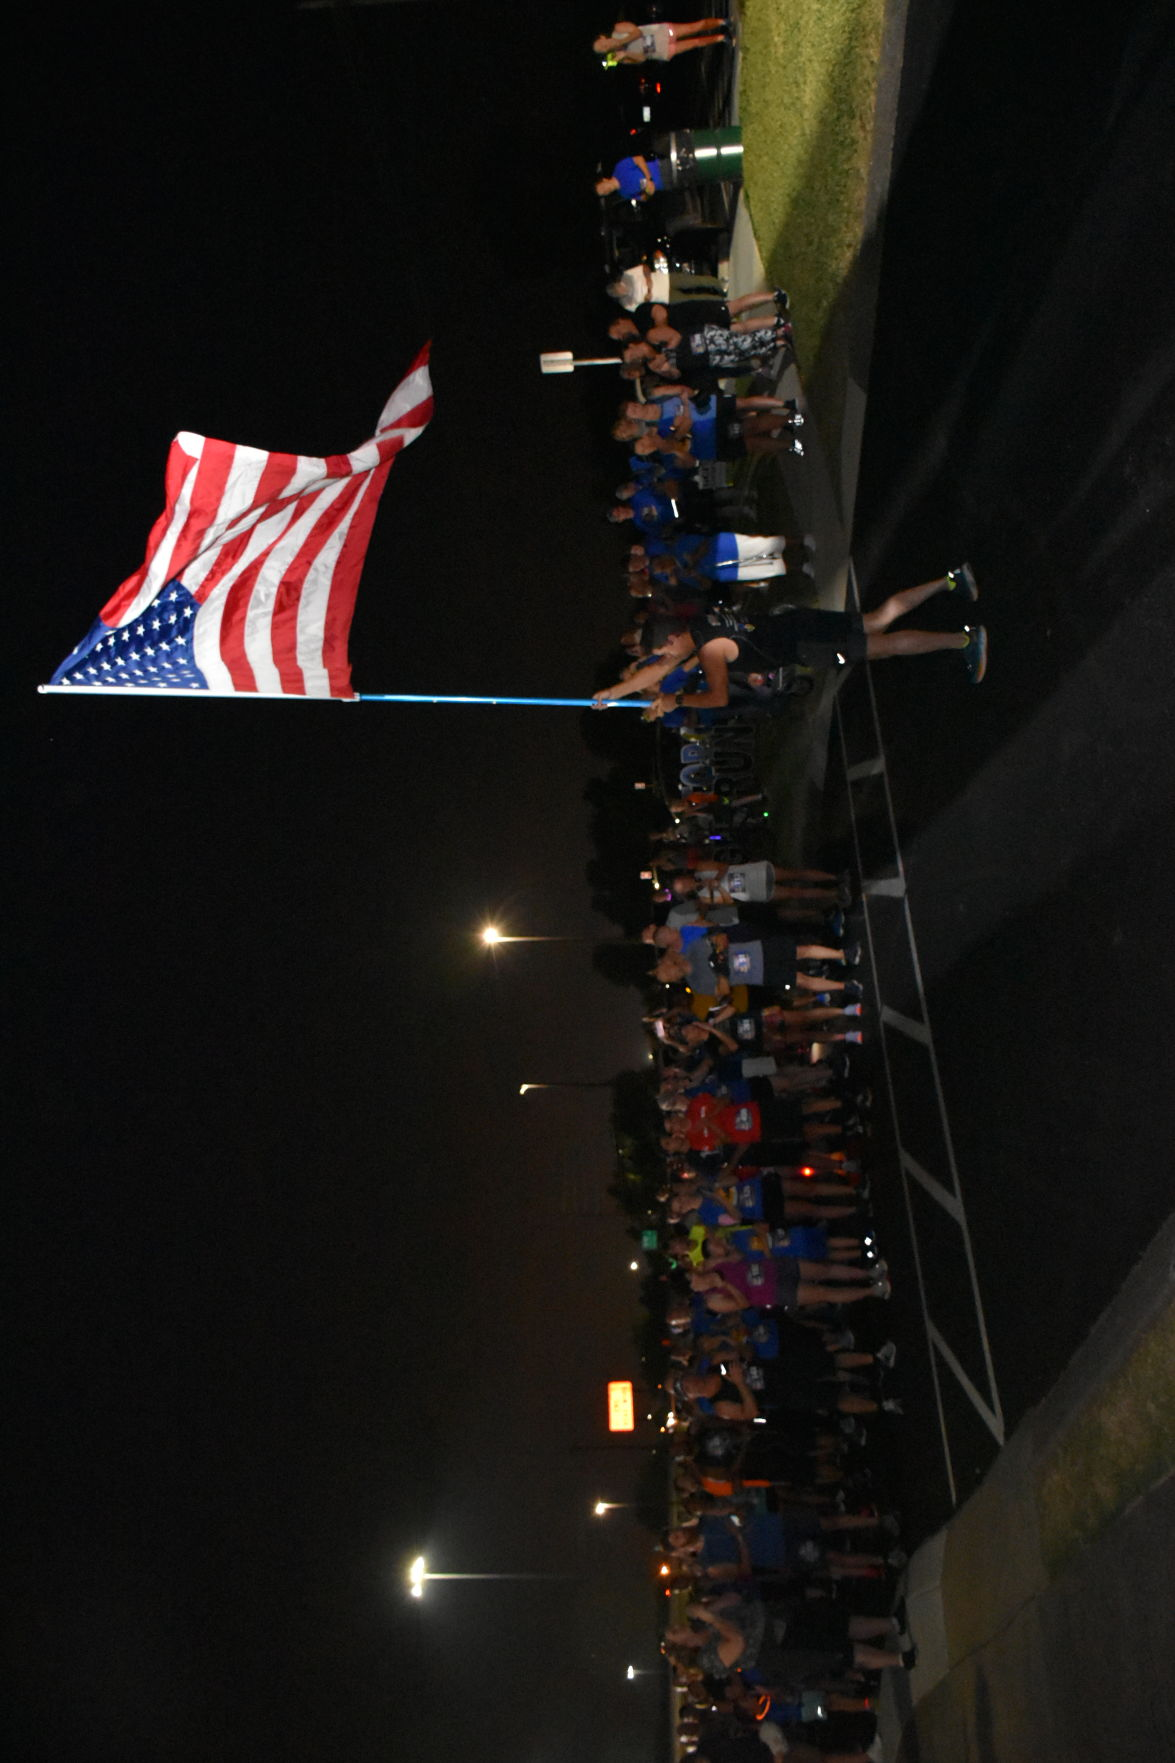 Top Gun Night Run participants recite the Pledge of Allegiance at the Smyrna Event Center starting line. Randy Woodward, a veteran wounded in combat, waves the U.S. flag.